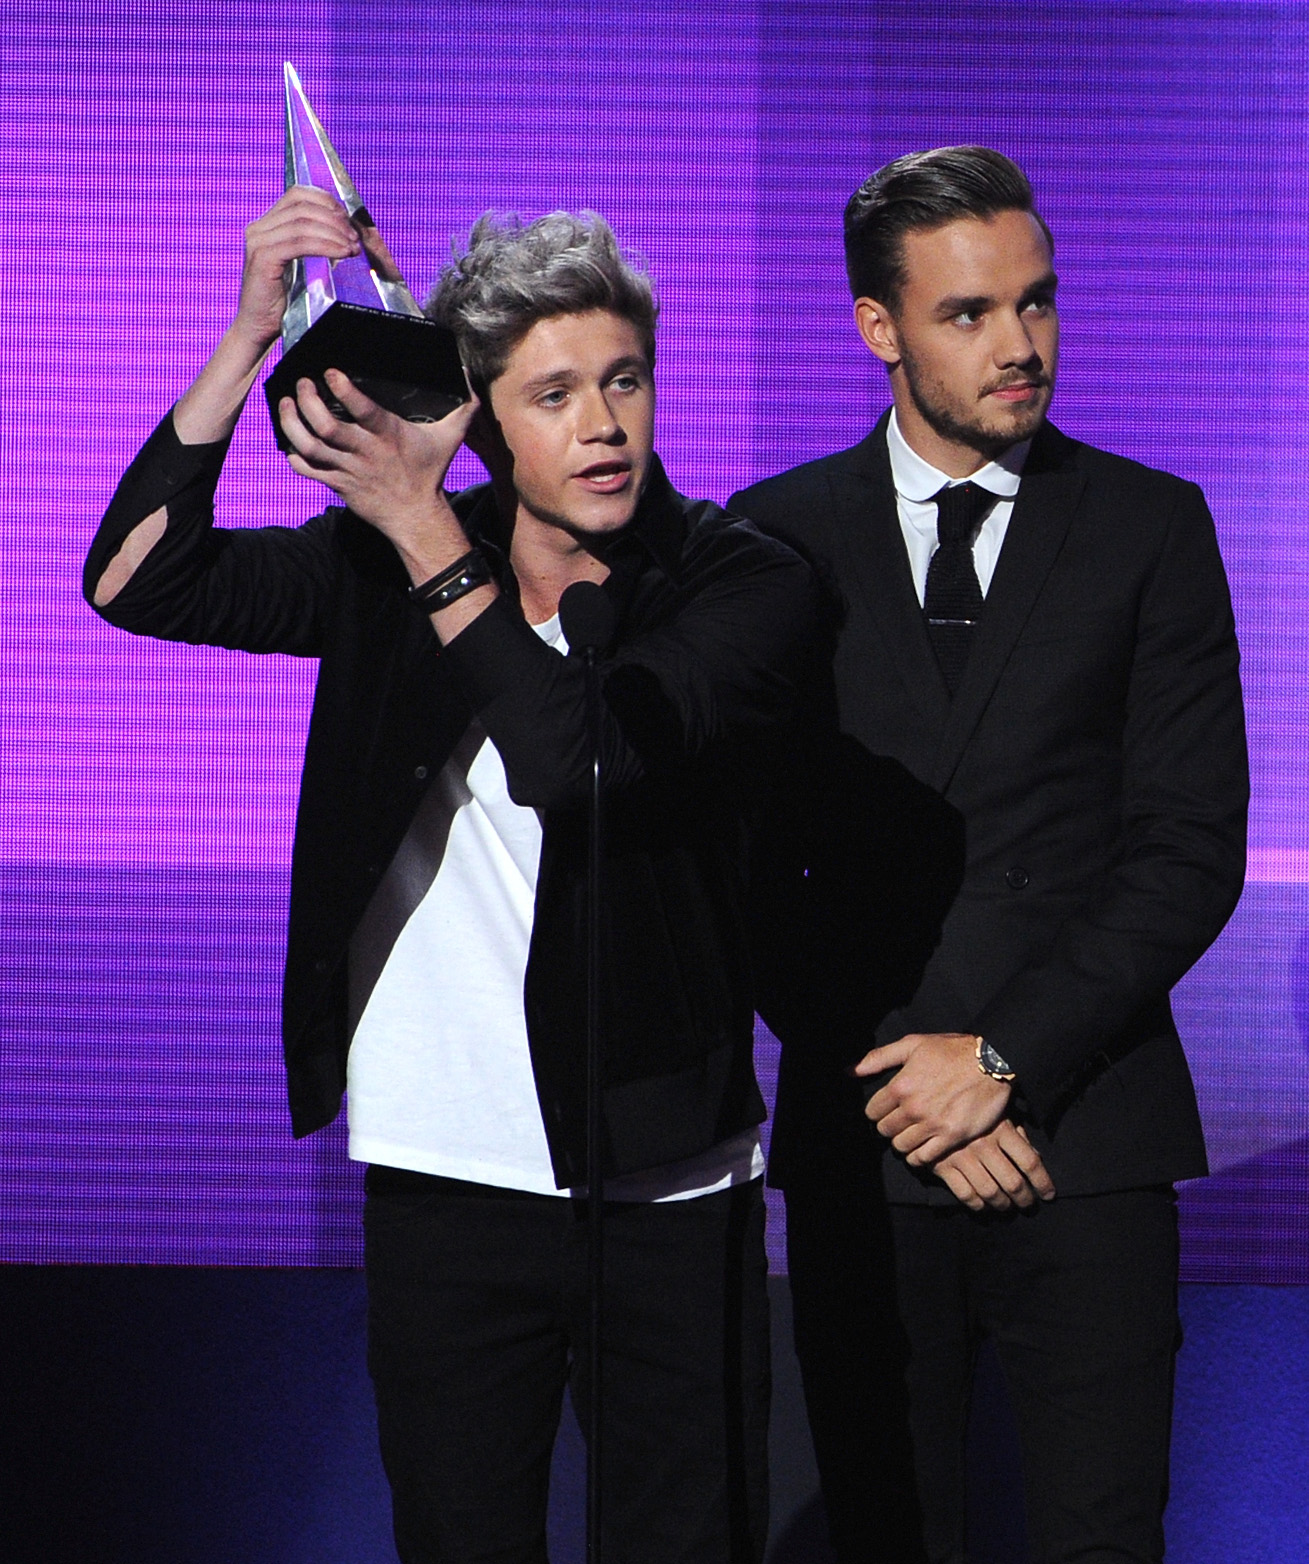 Niall Horan and Liam Payne of One Direction